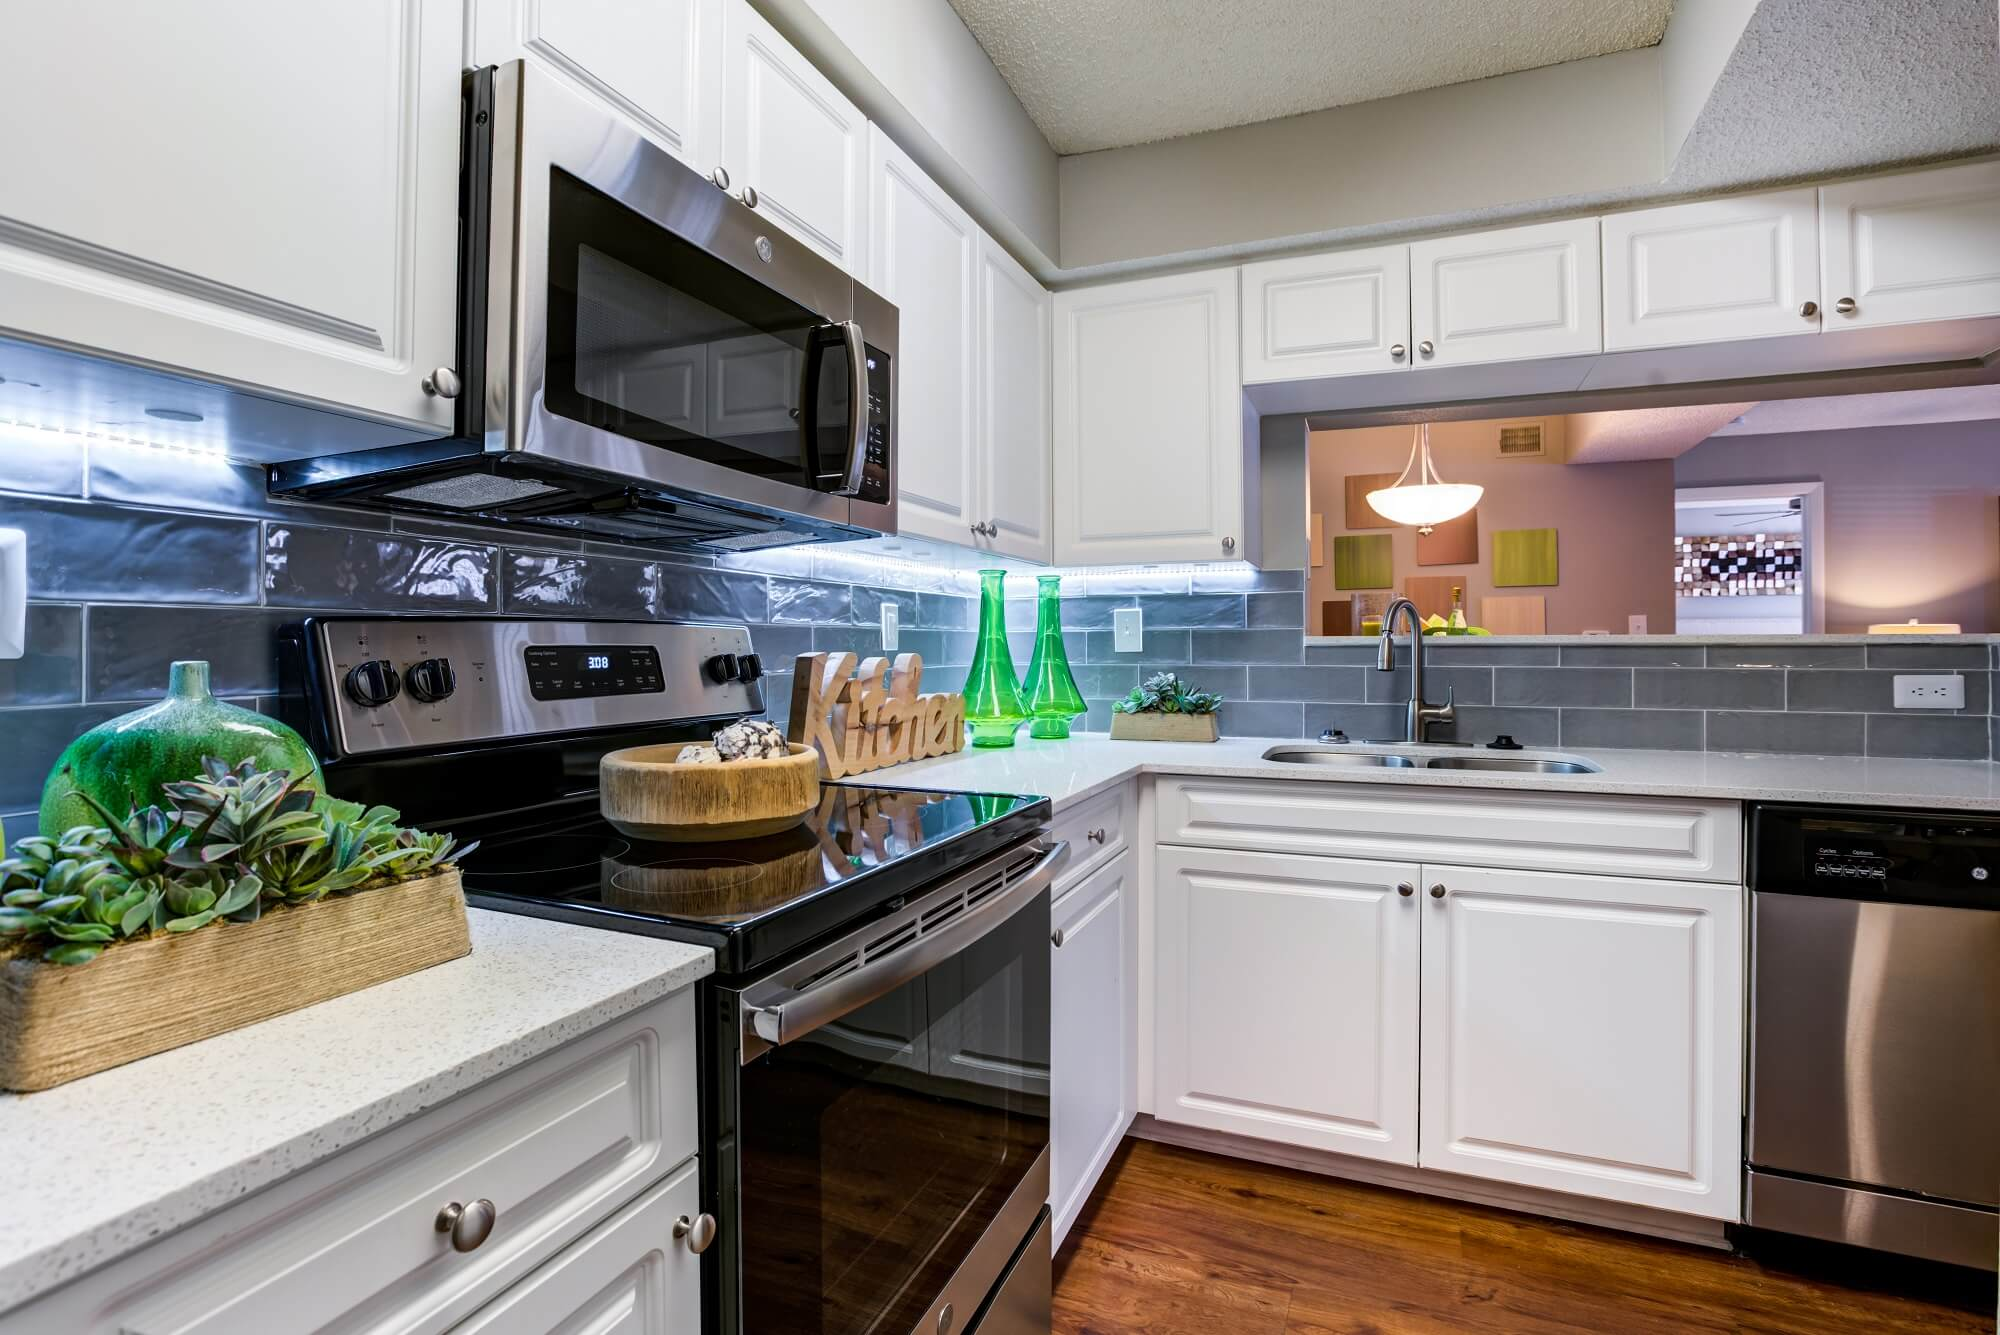 l-shaped kitchen with white cabinets, tiled backsplash, stove, microwave, and dishwasher.